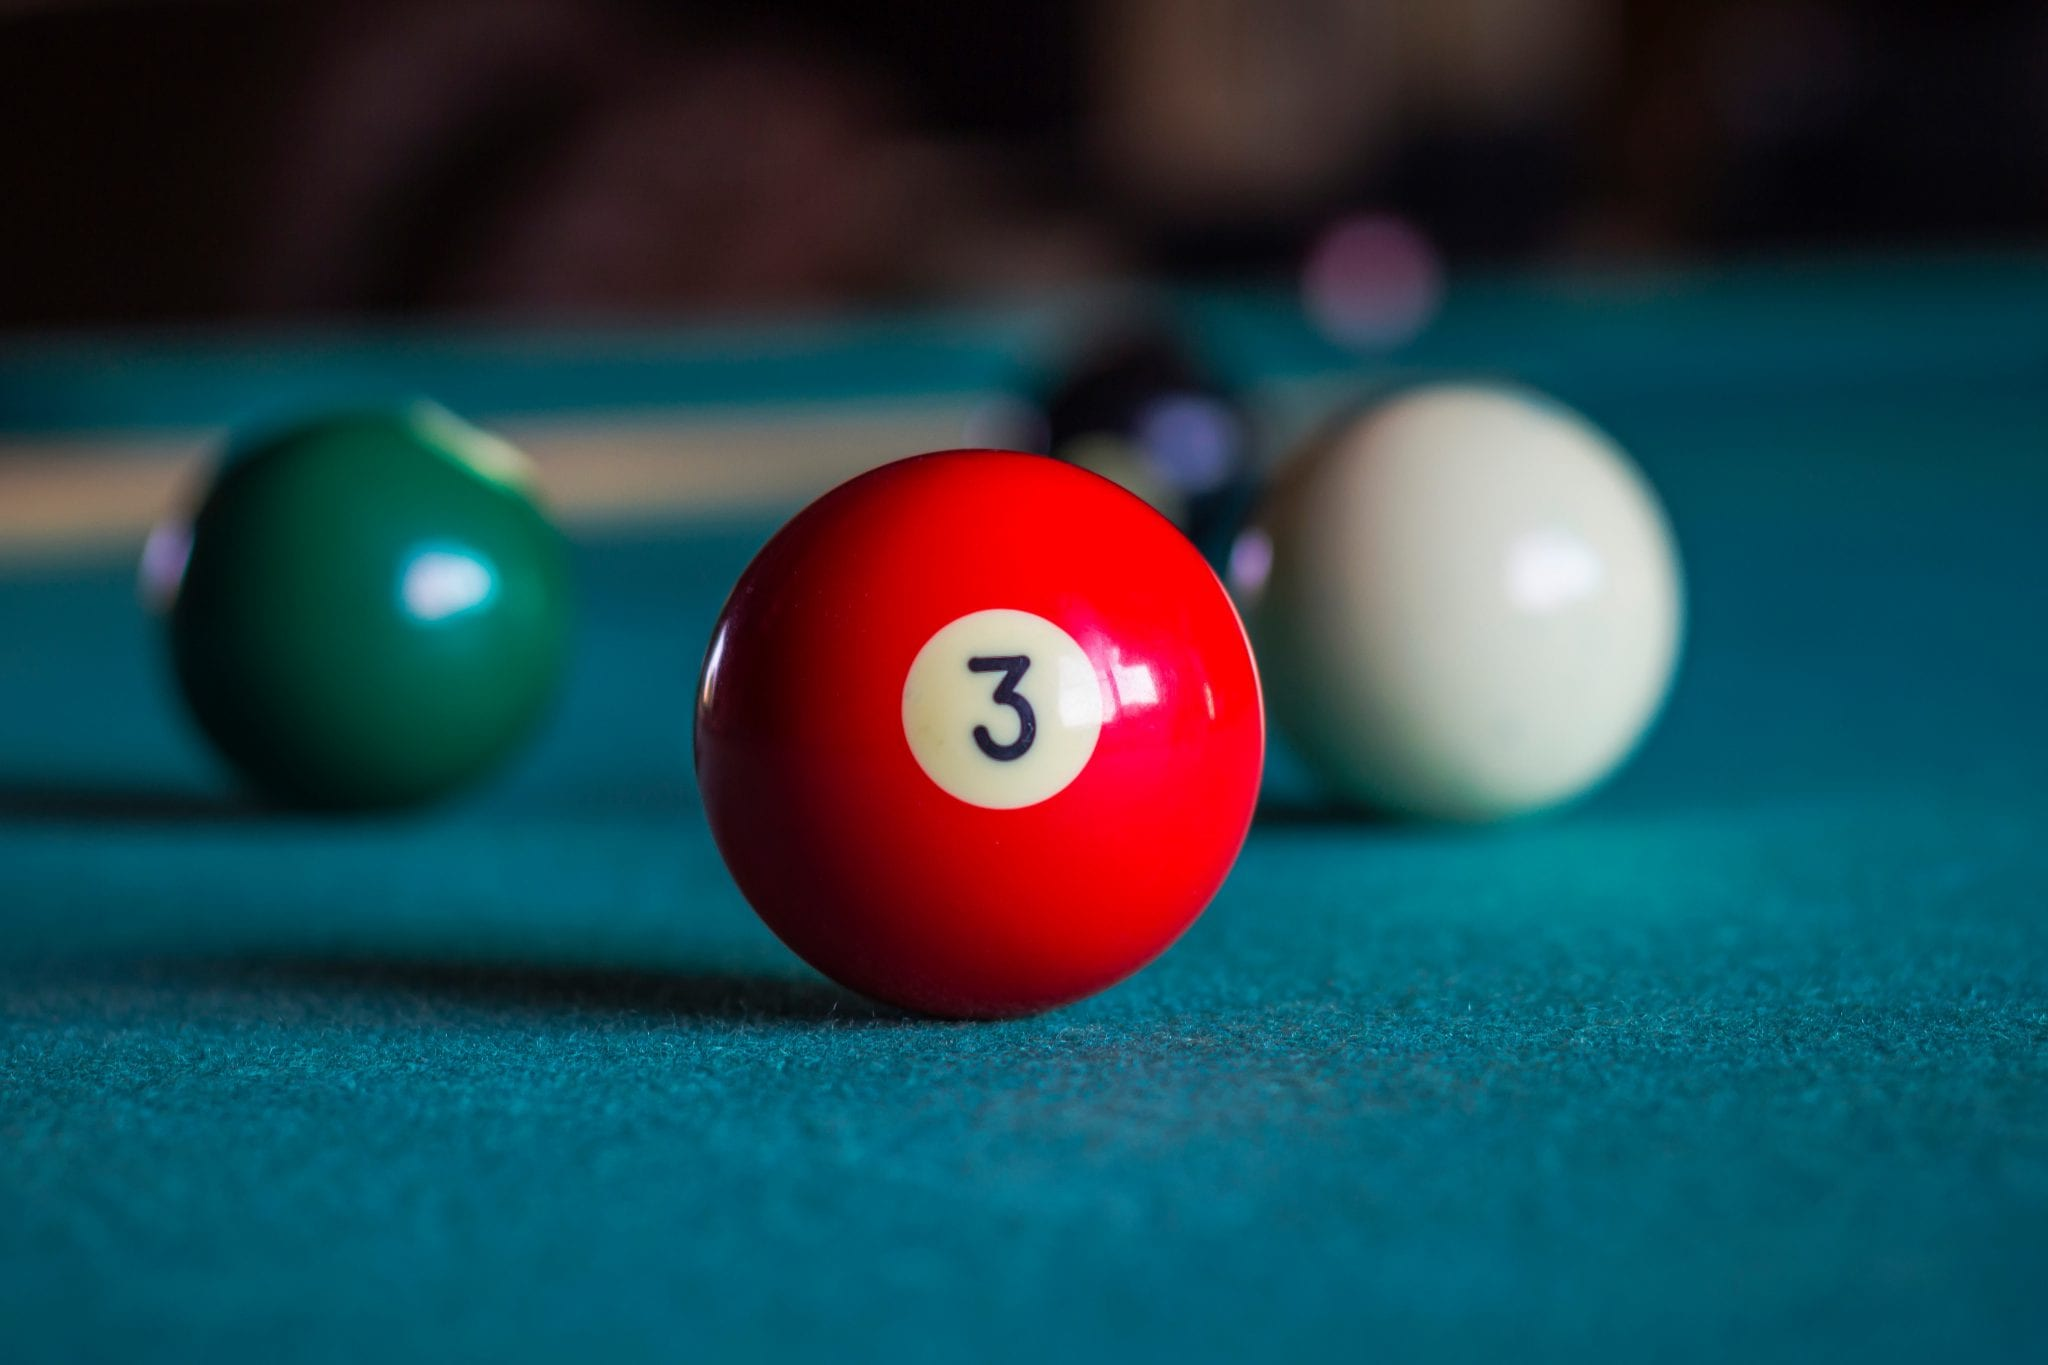 Fancy a game of billiards? Let's play.